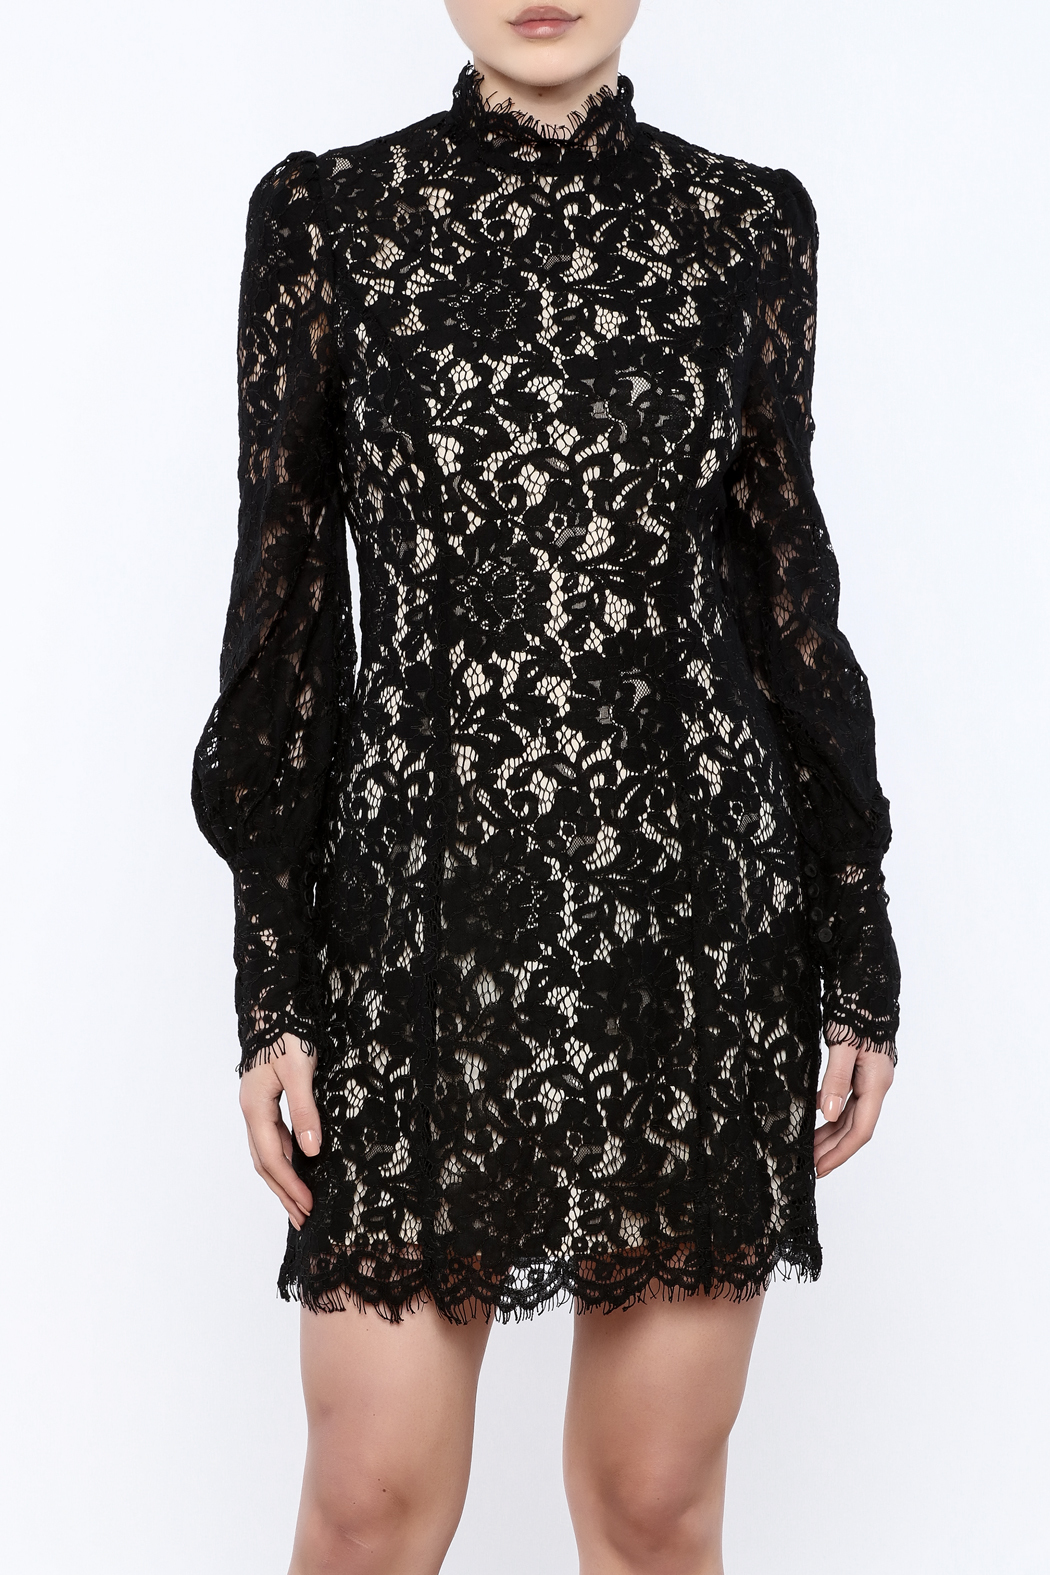 7eb52d3a0c Do   Be Lace Mock Neck Dress from New York by Dor L Dor — Shoptiques